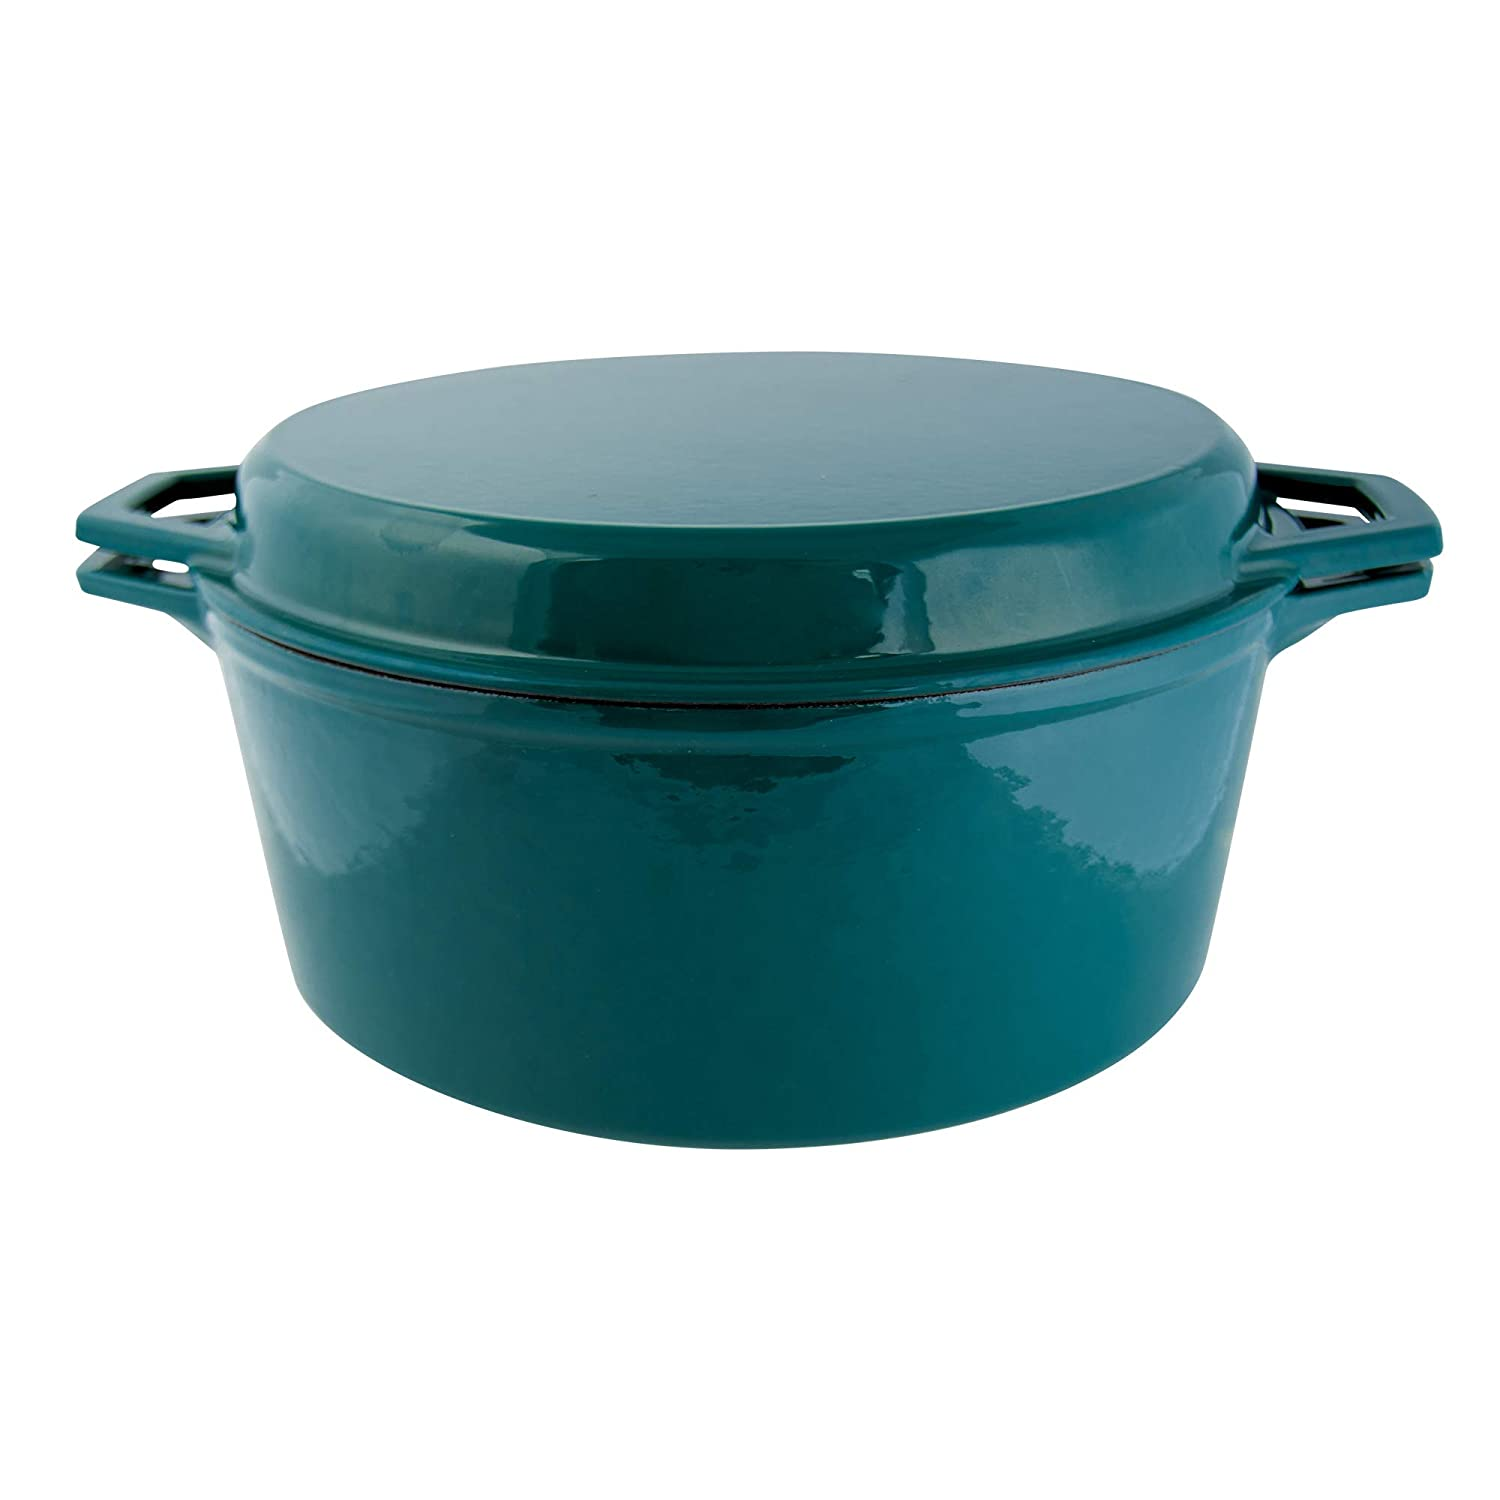 Taste of Home 7-quart Enameled Cast Iron Dutch Oven with Grill Lid